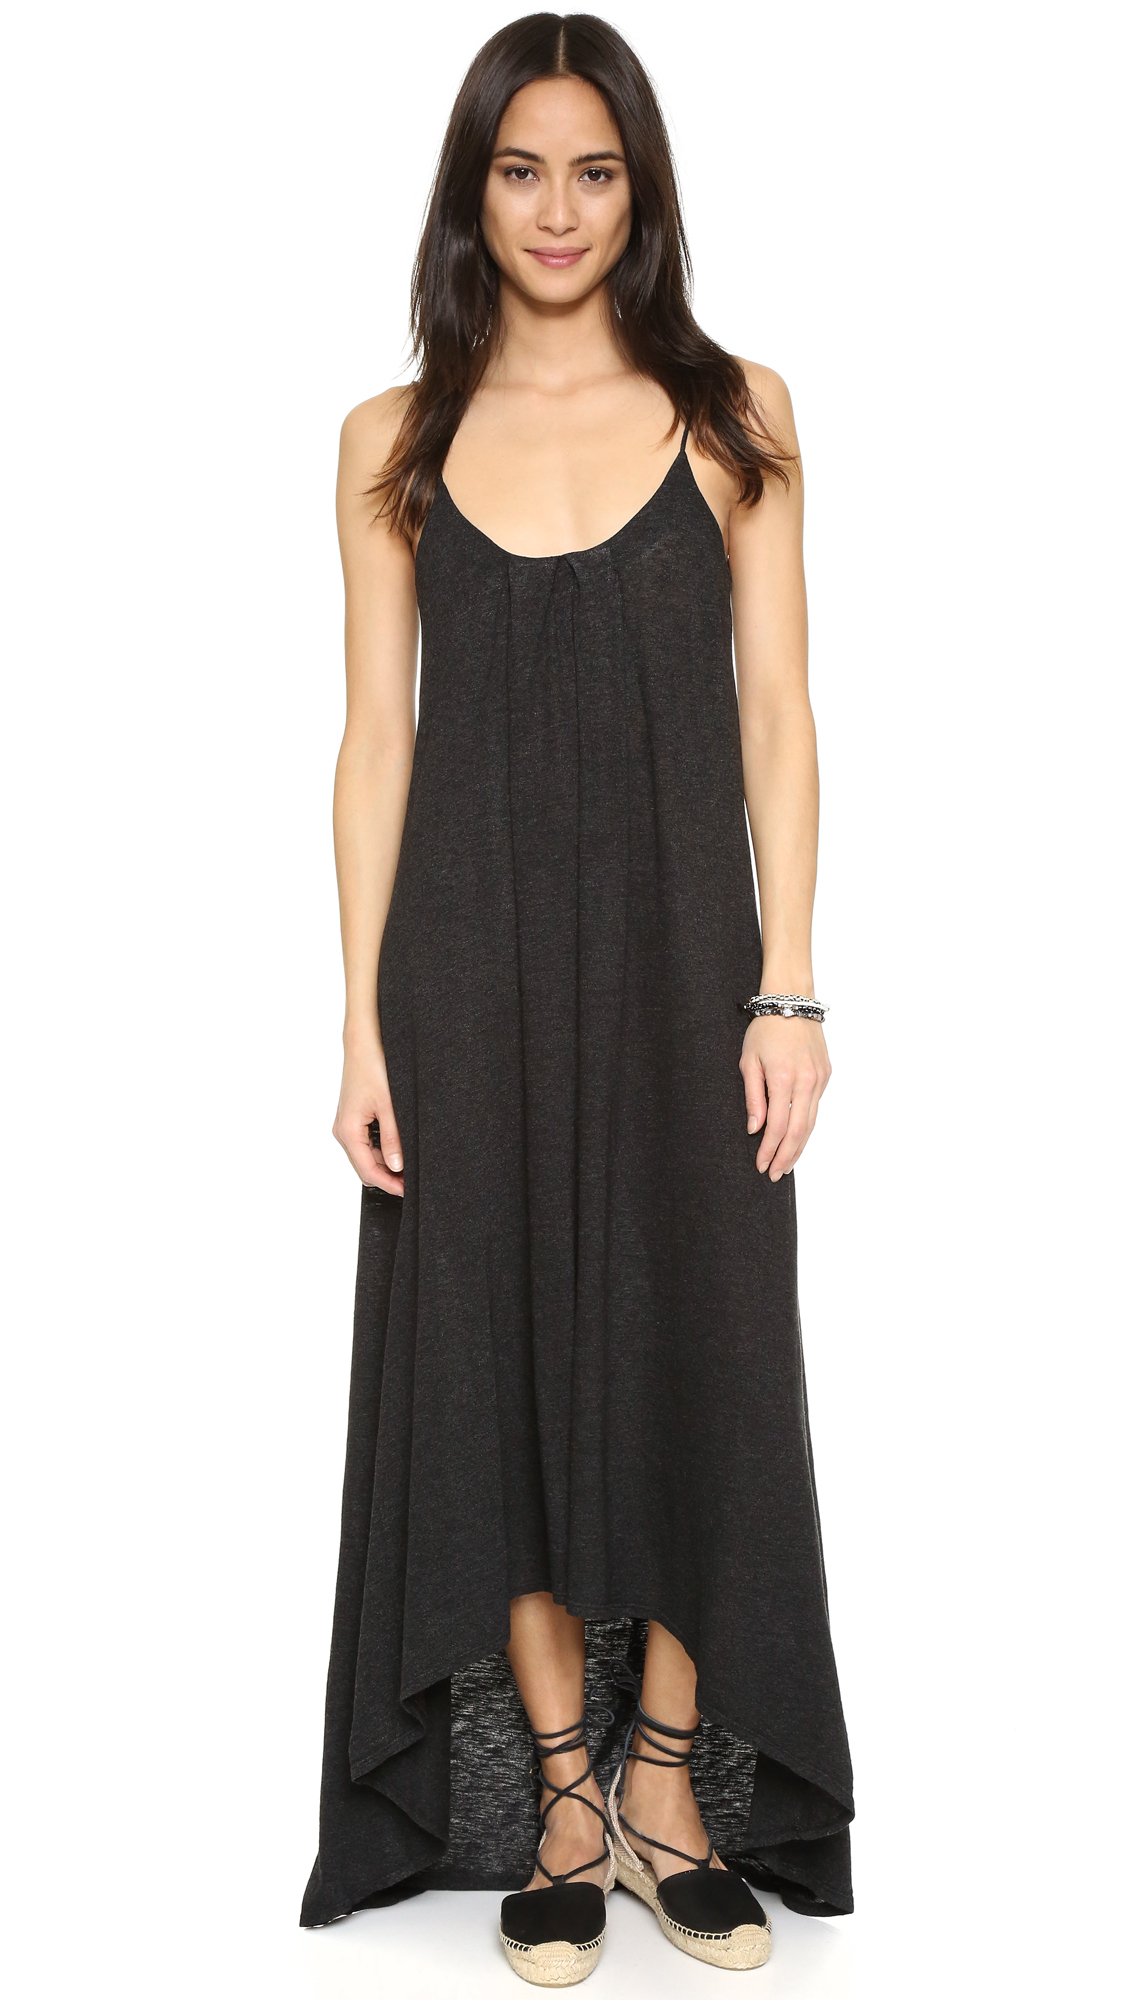 Lanston High Low Maxi Dress - Black at Shopbop